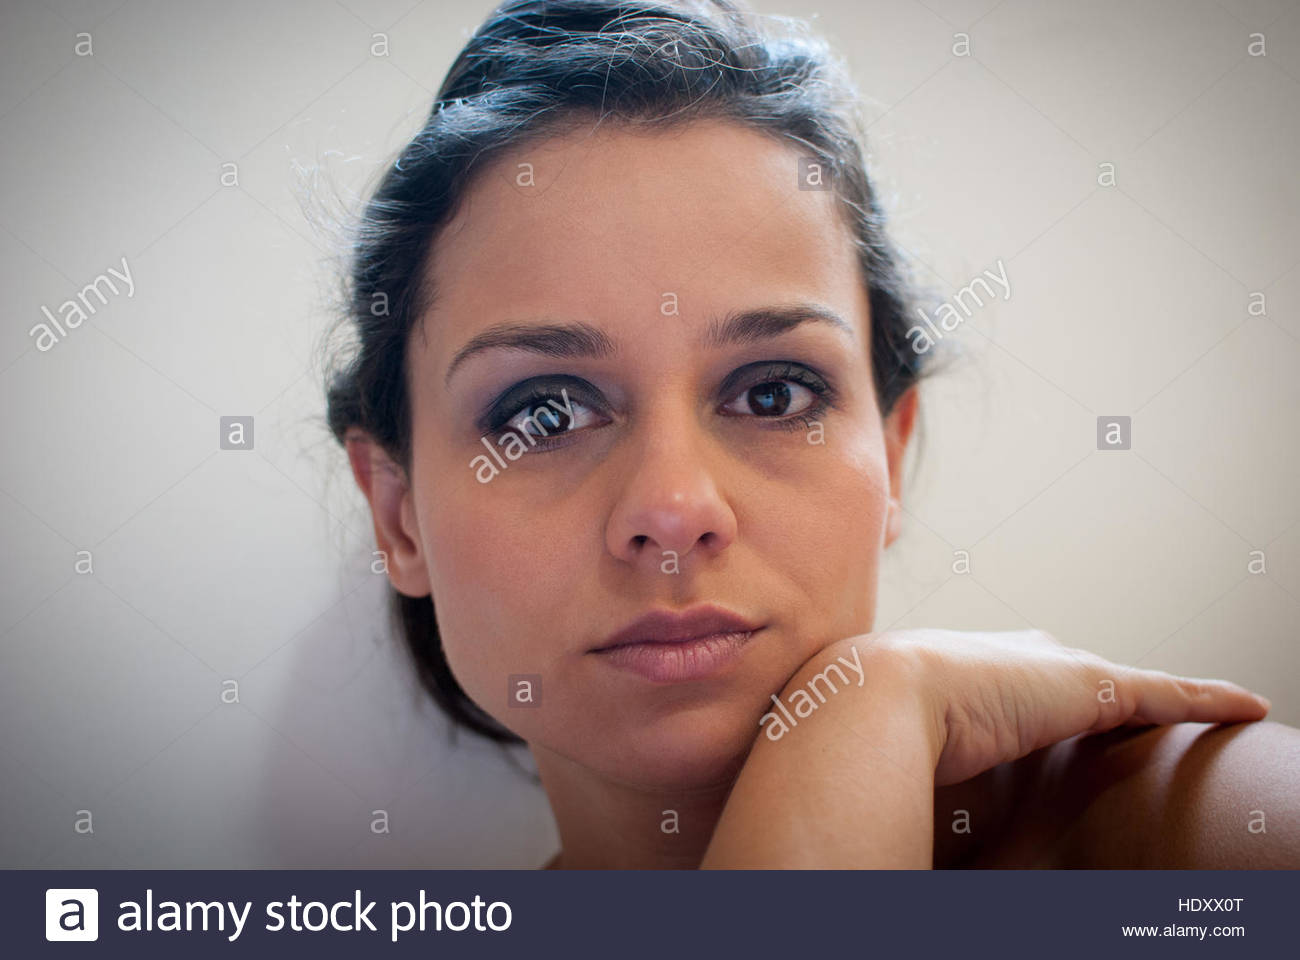 woman stares - Stock Image